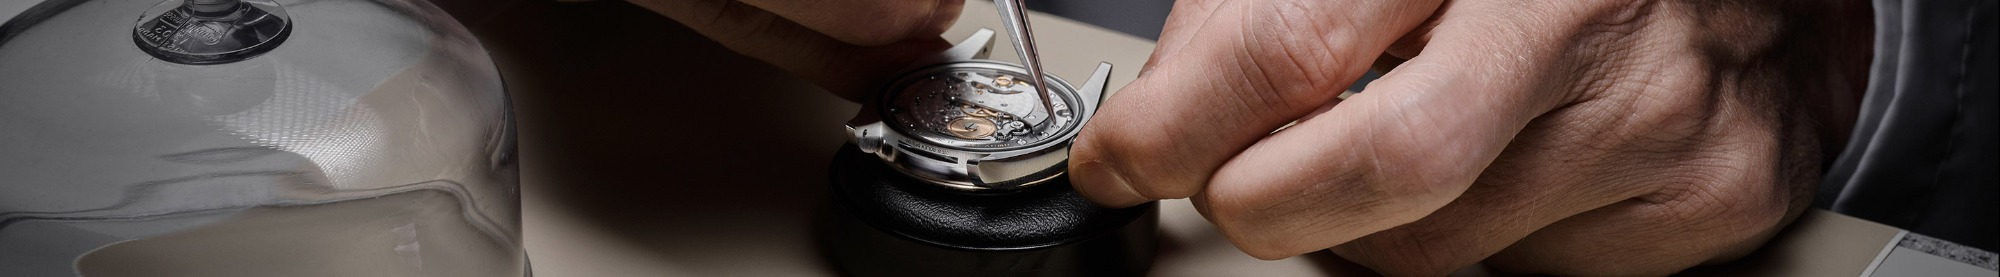 servicing-your-rolex-image-banner-01